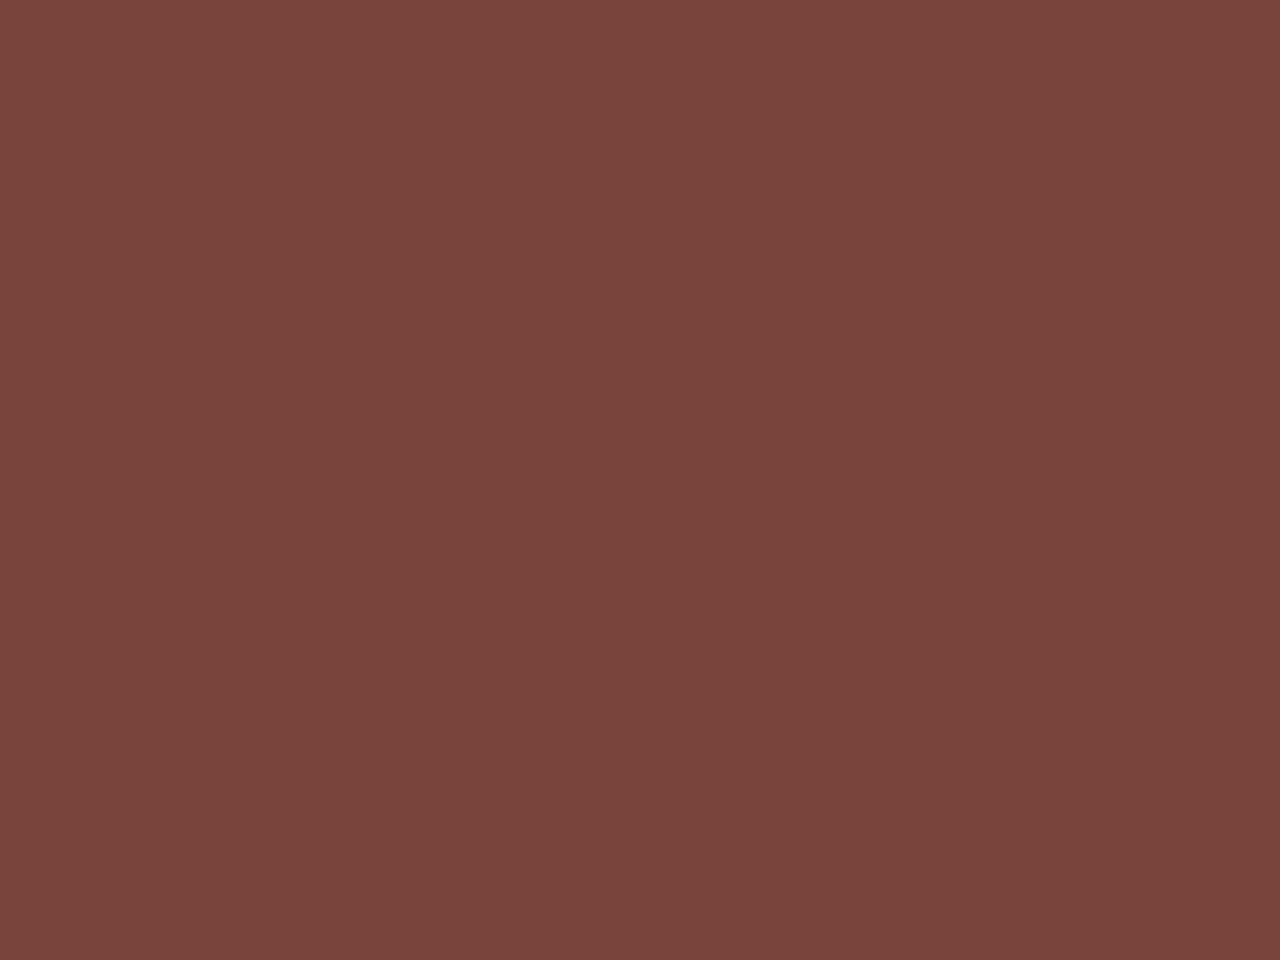 1280x960 Medium Tuscan Red Solid Color Background